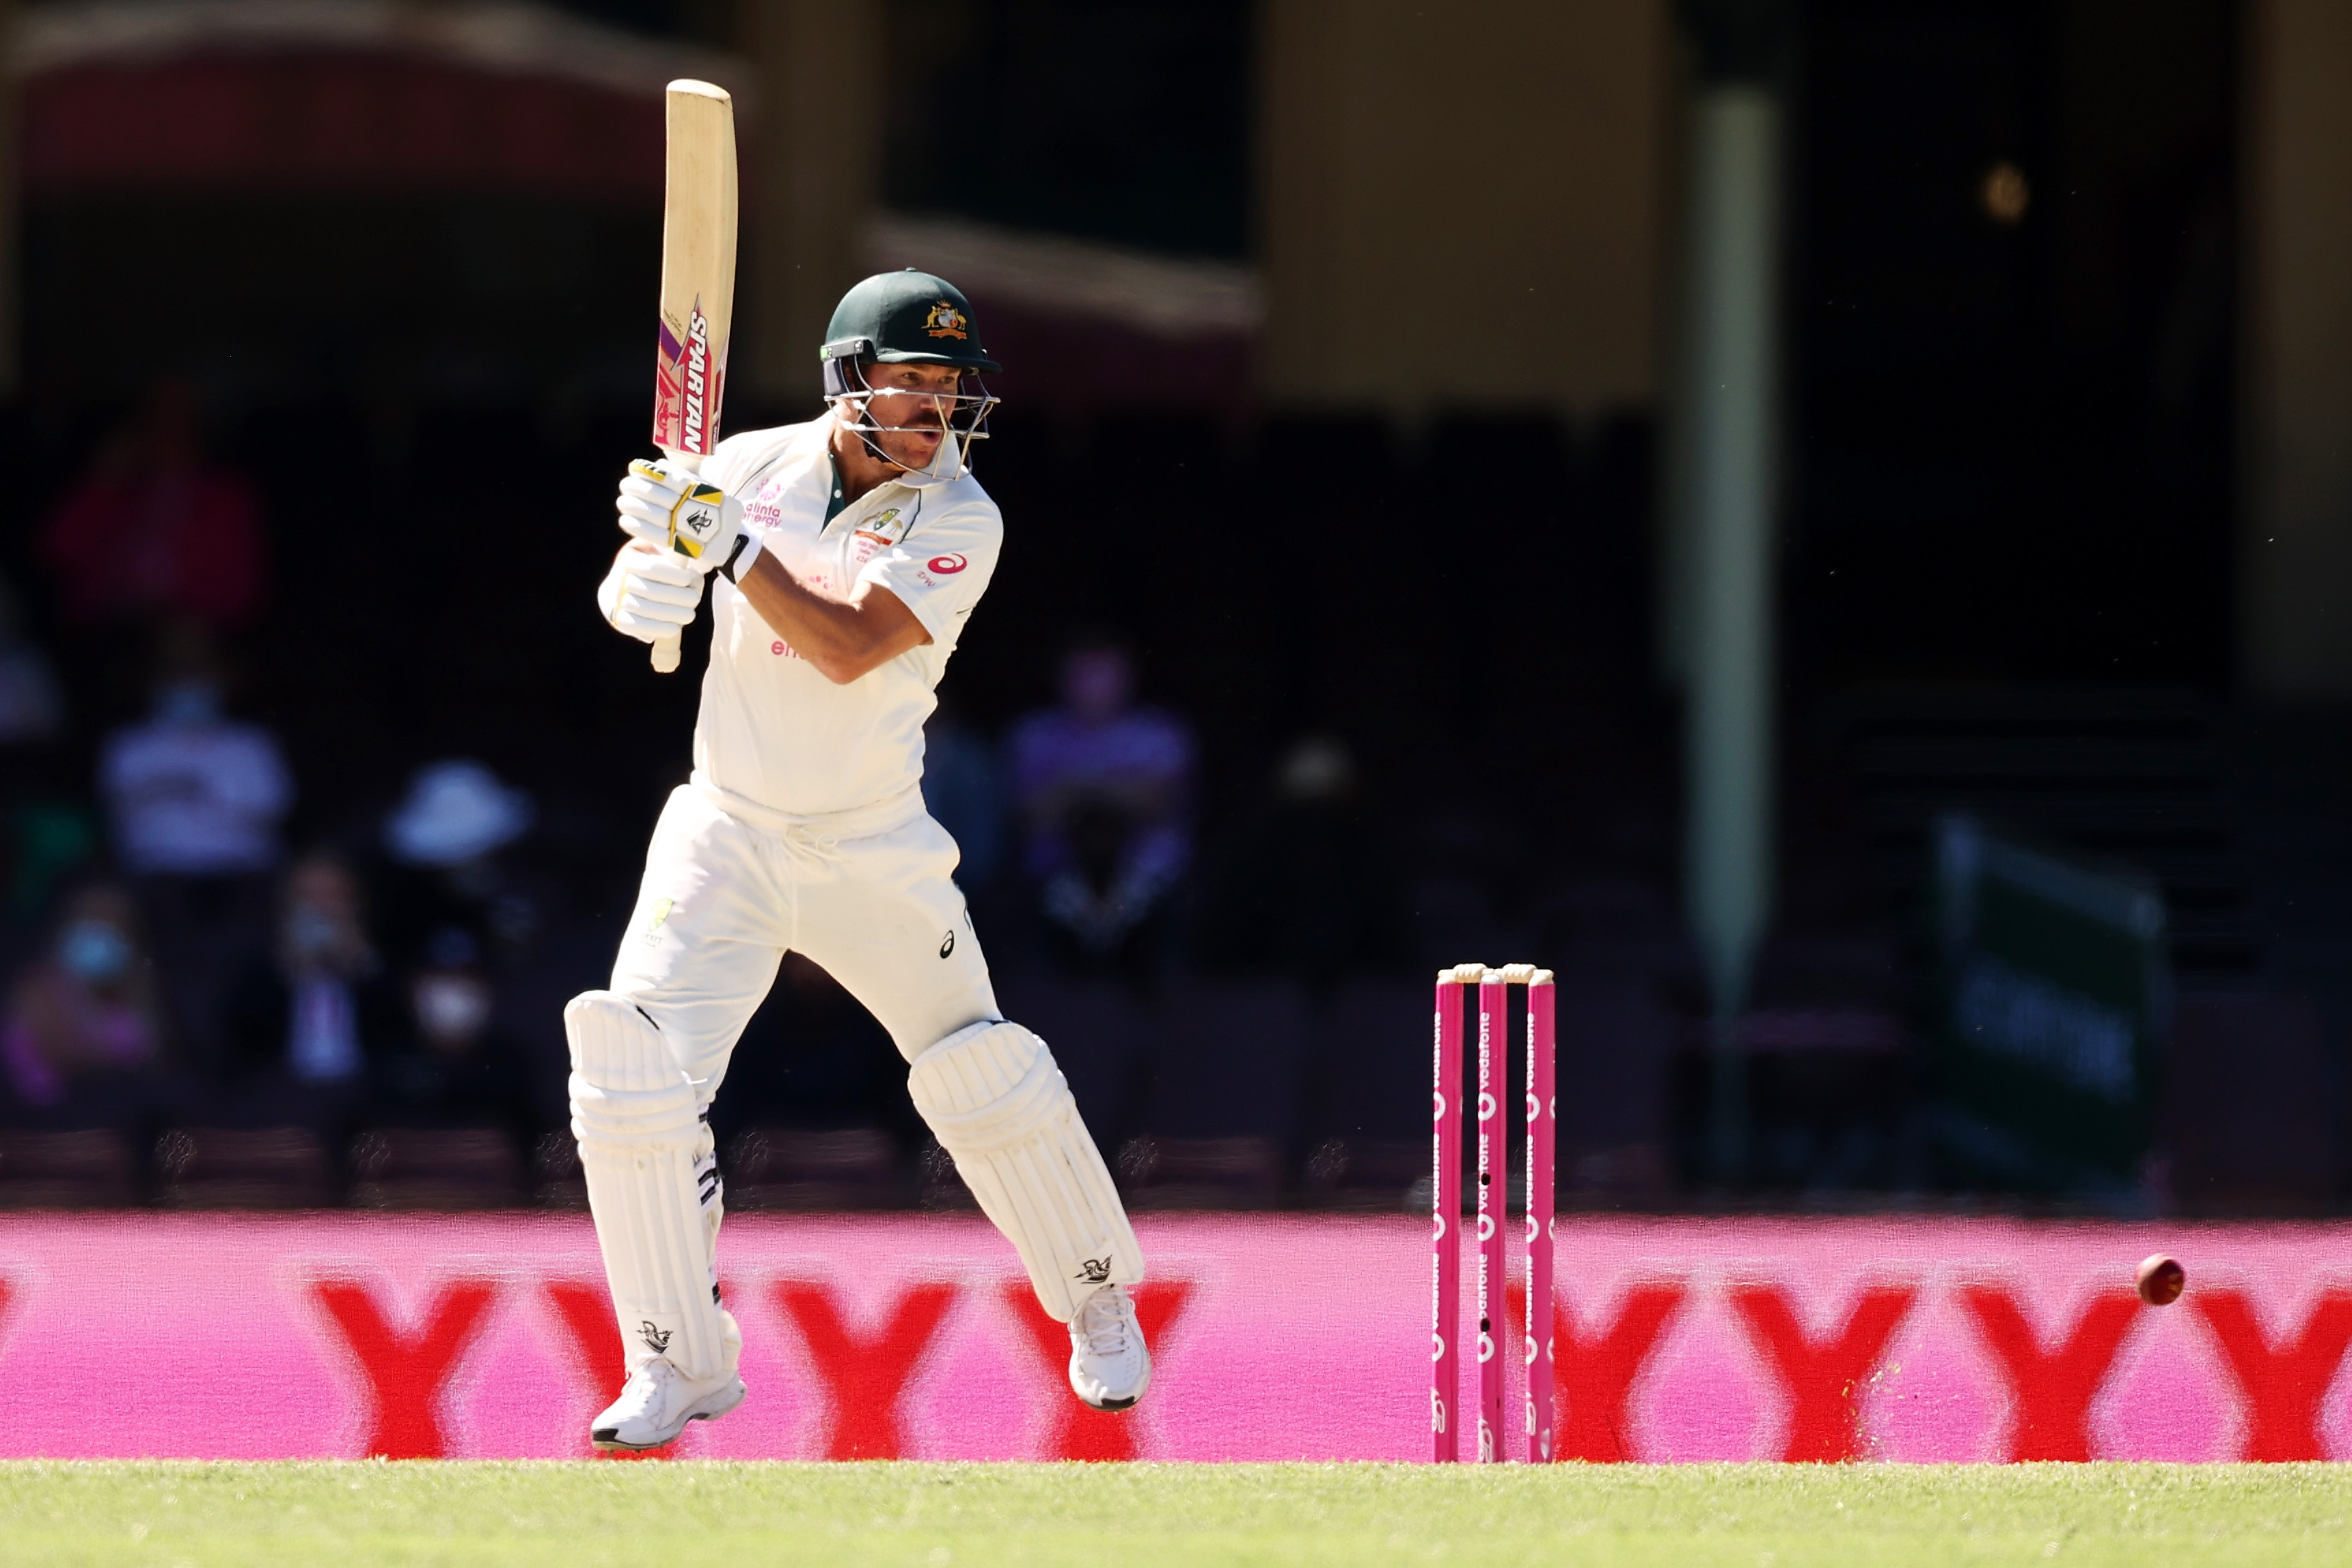 I would expect better from Australian crowd - Warner apologises to India over SCG abuse